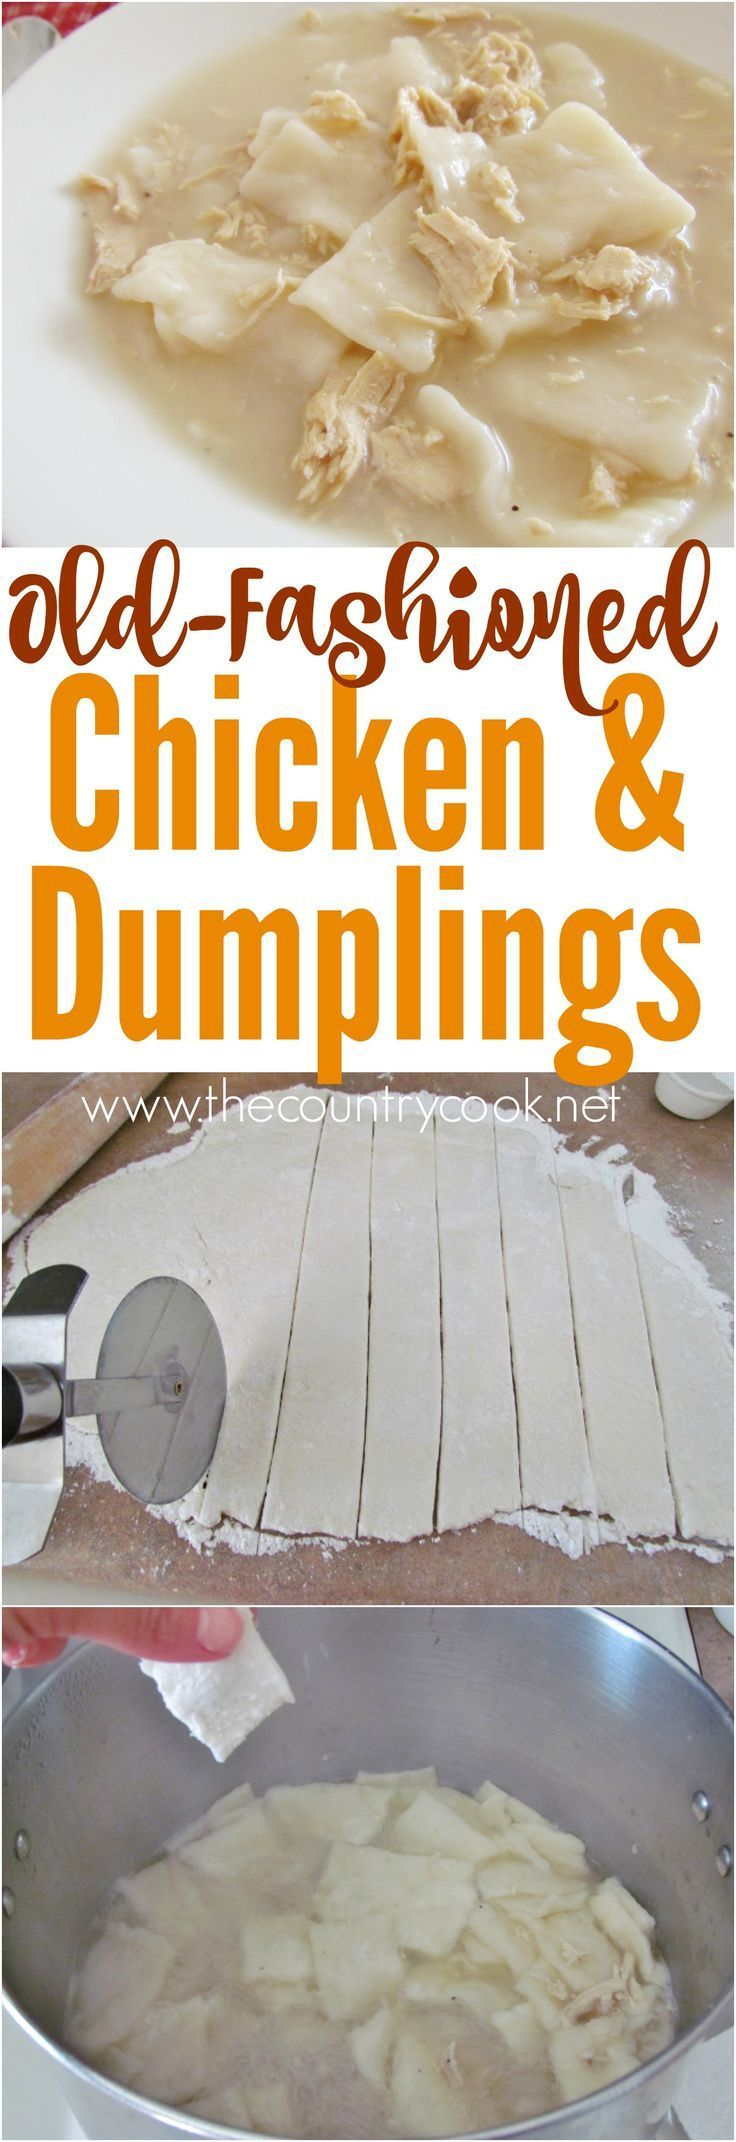 Old-Fashioned Chicken & Dumplings recipe from The Country Cook